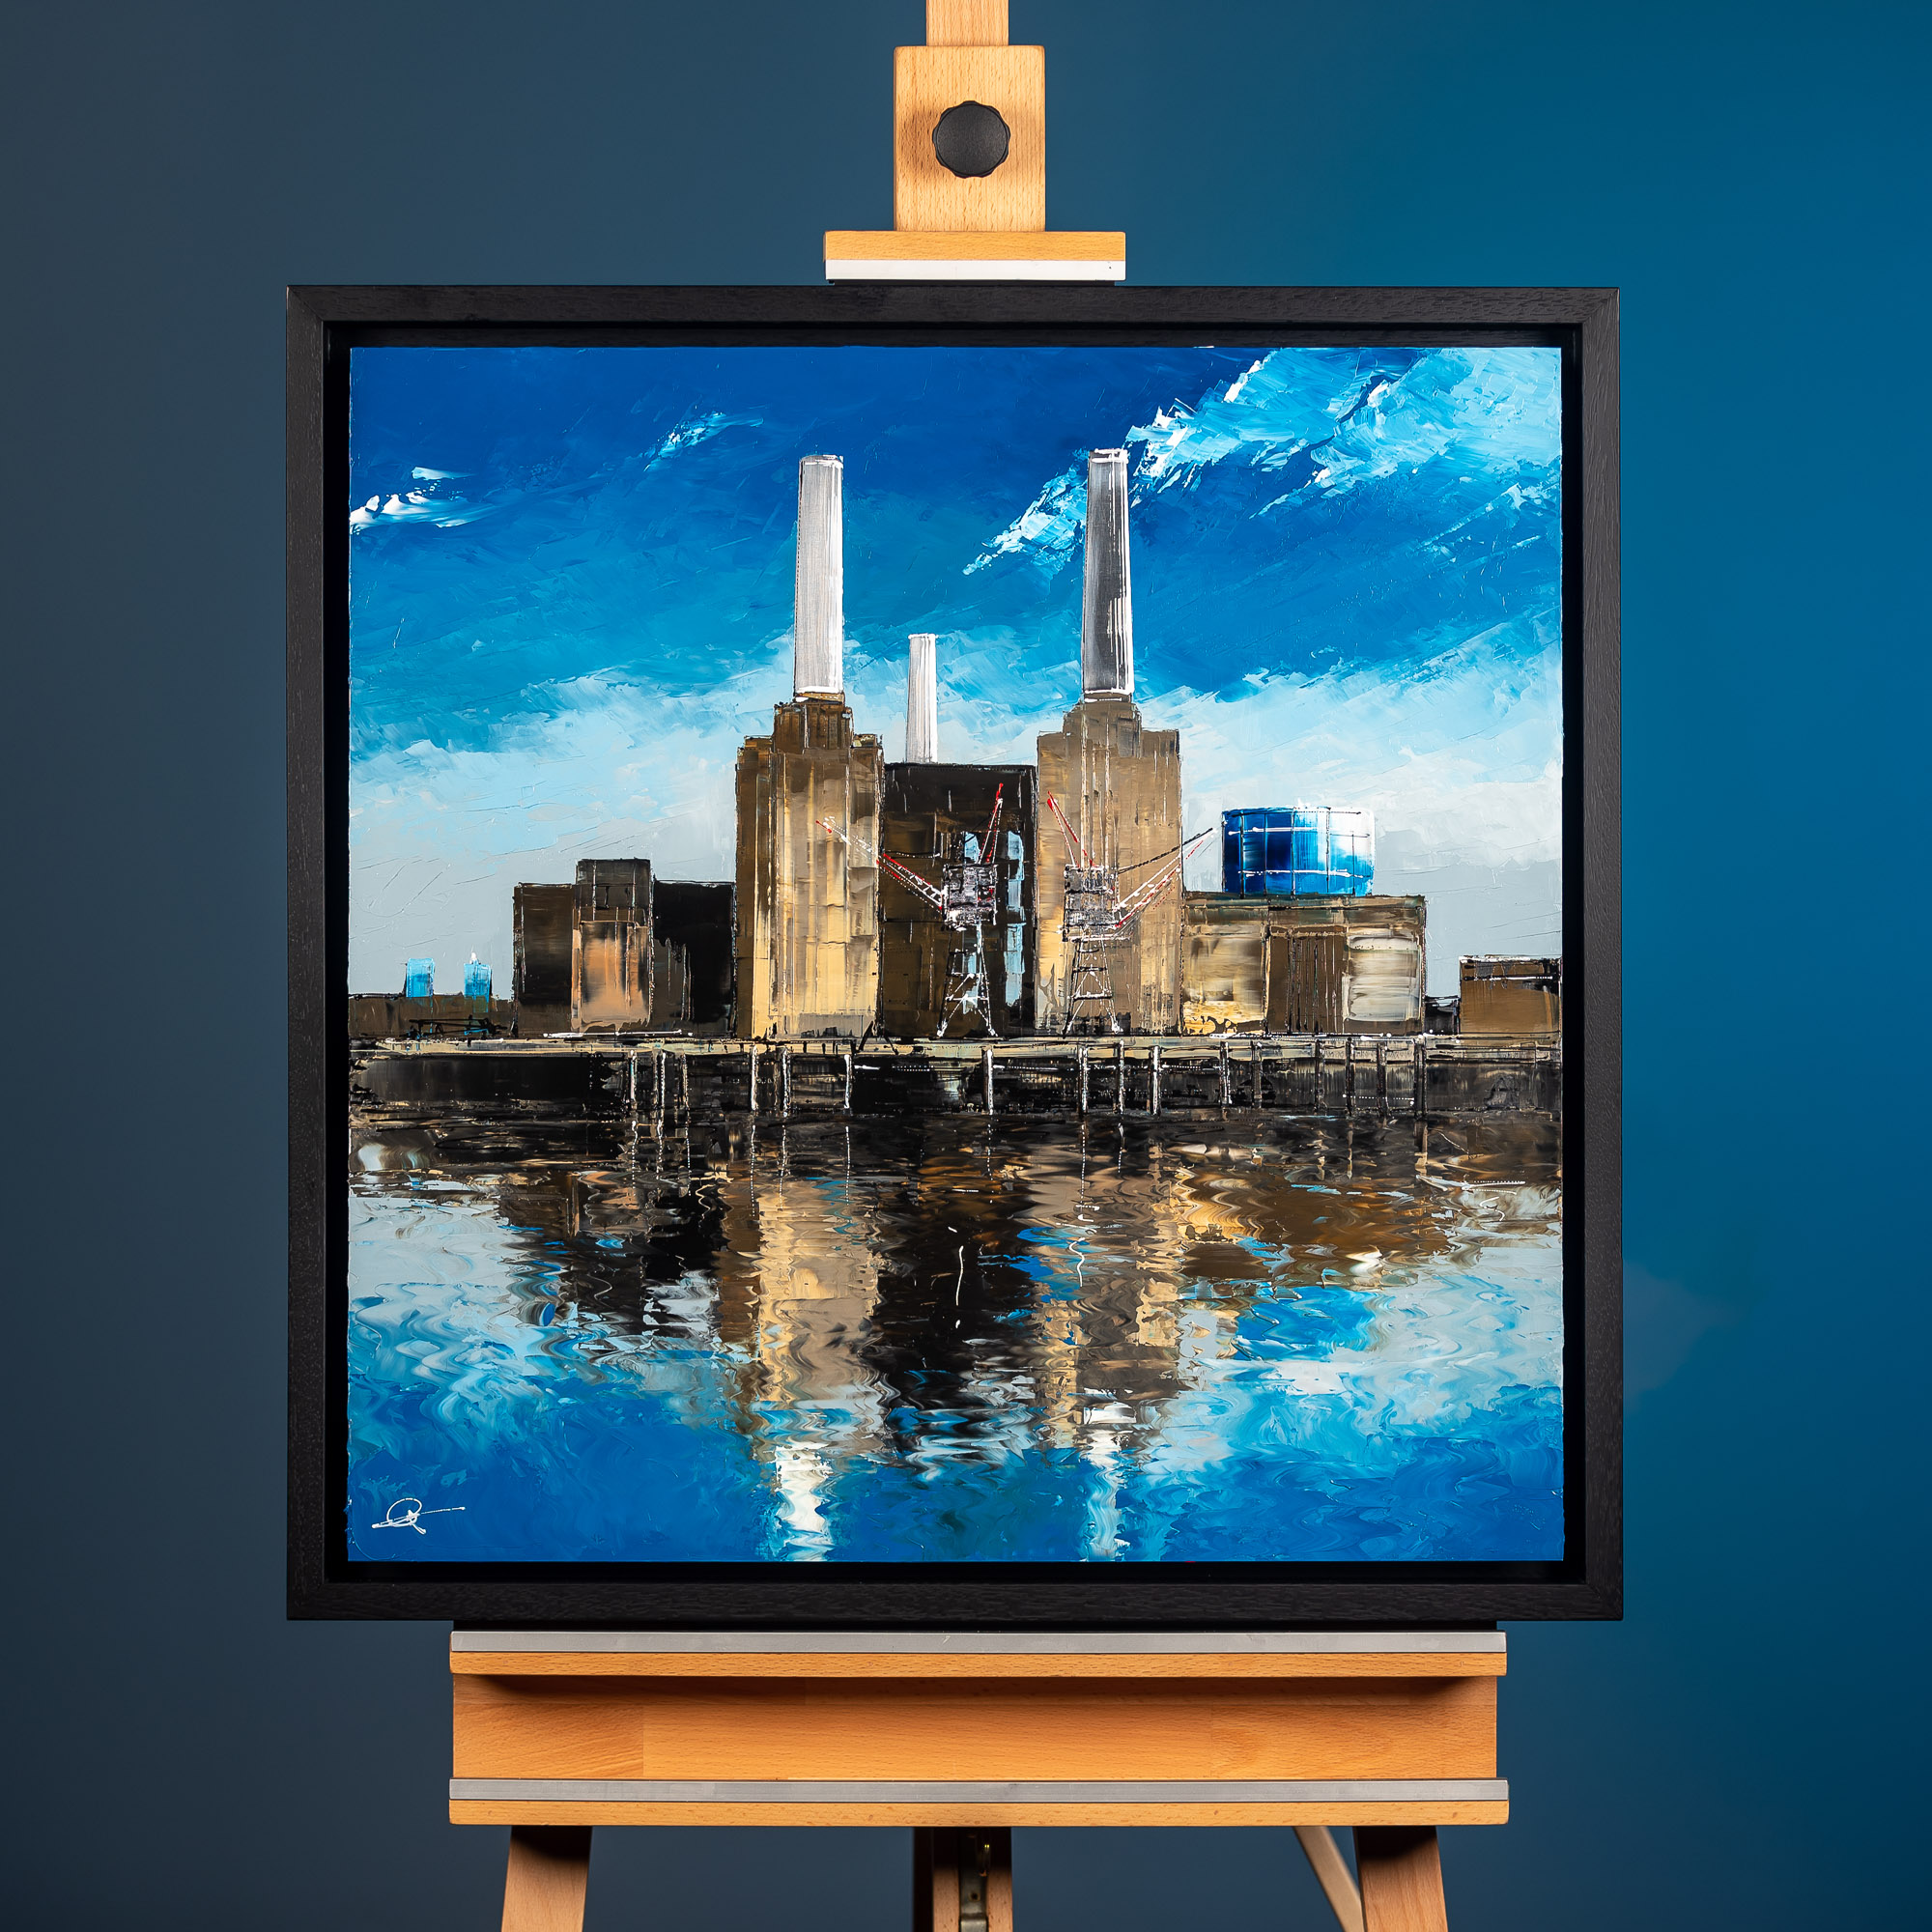 Battersea Blues by Paul Kenton, UK Contemporary artist, a London River Thames Cityscape original oil painting from his London Art Collection